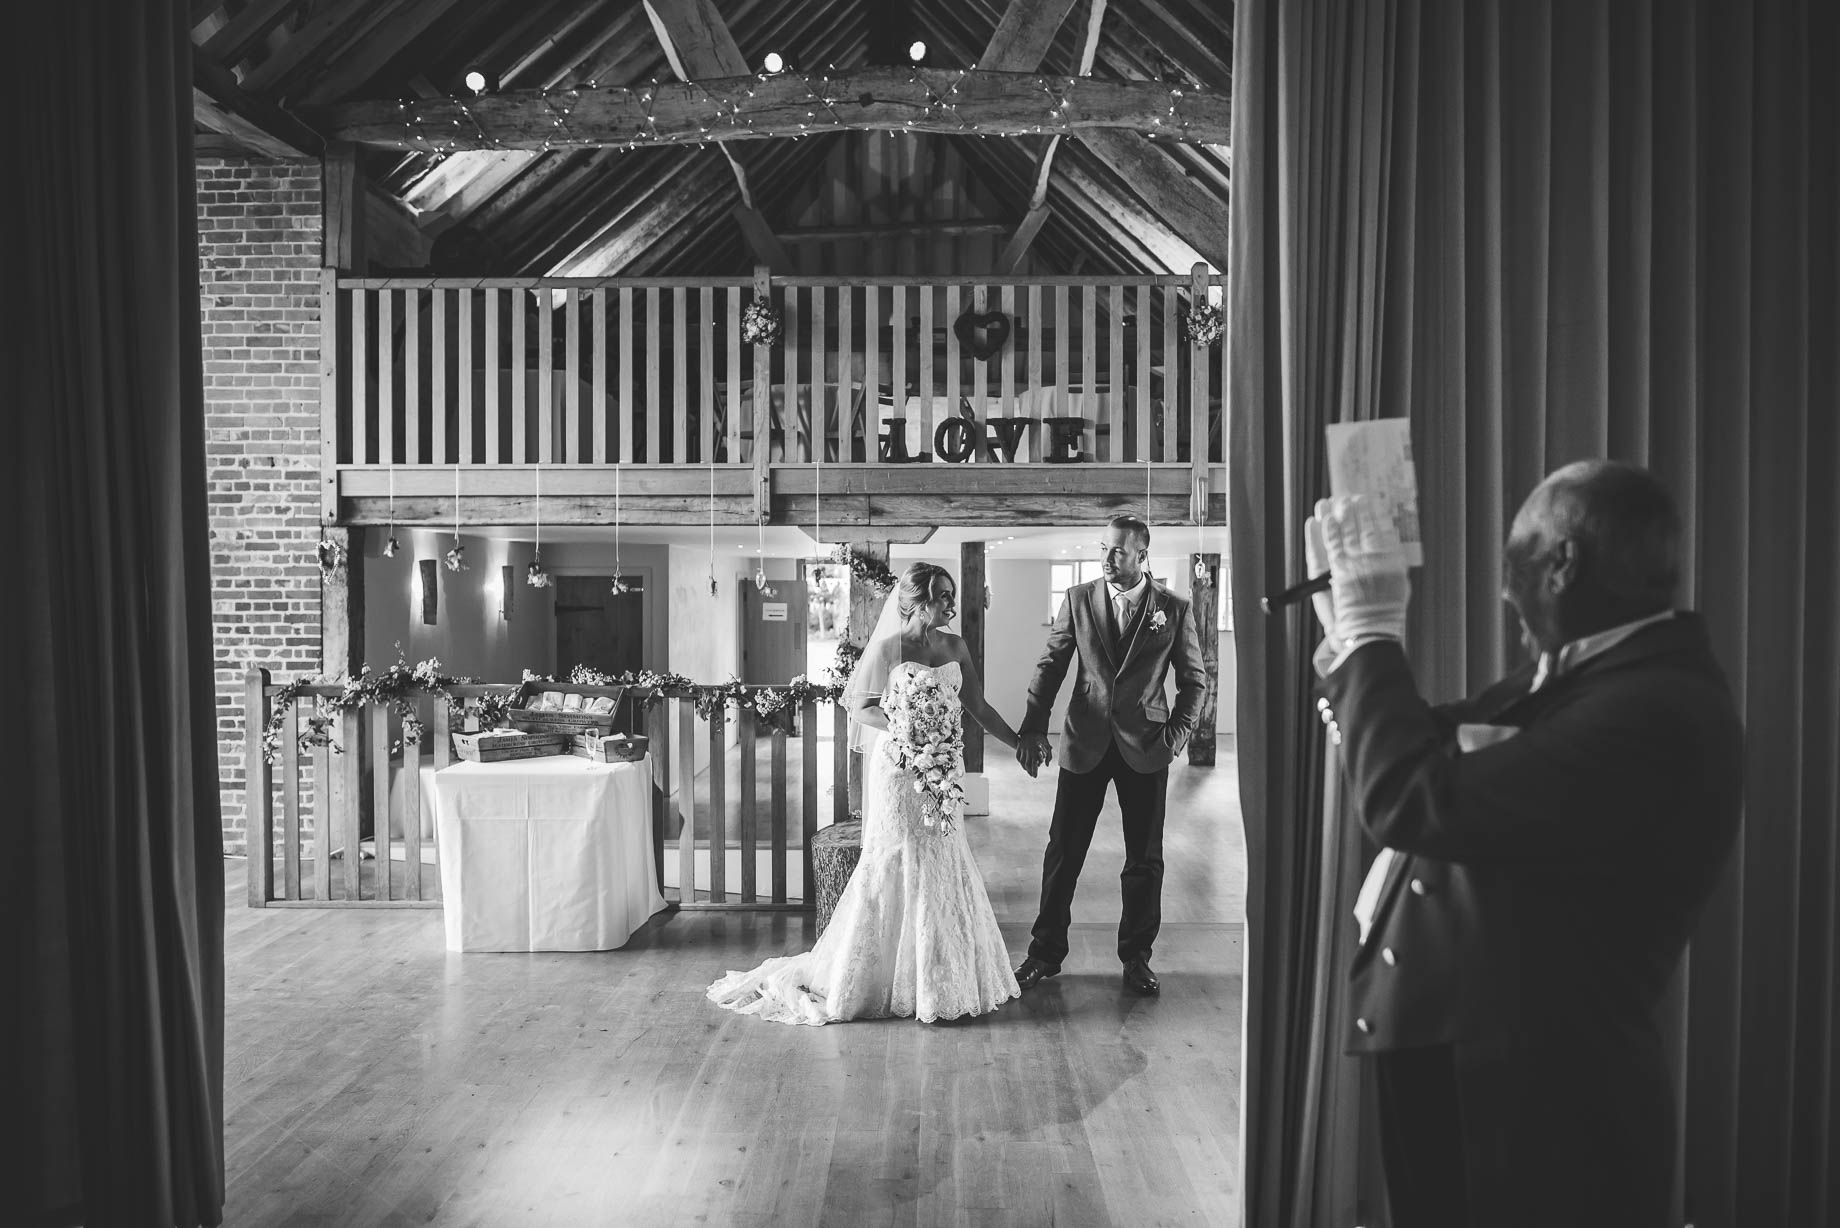 Bury Court Barn wedding photography - Guy Collier - Kate and Russ (123 of 187)